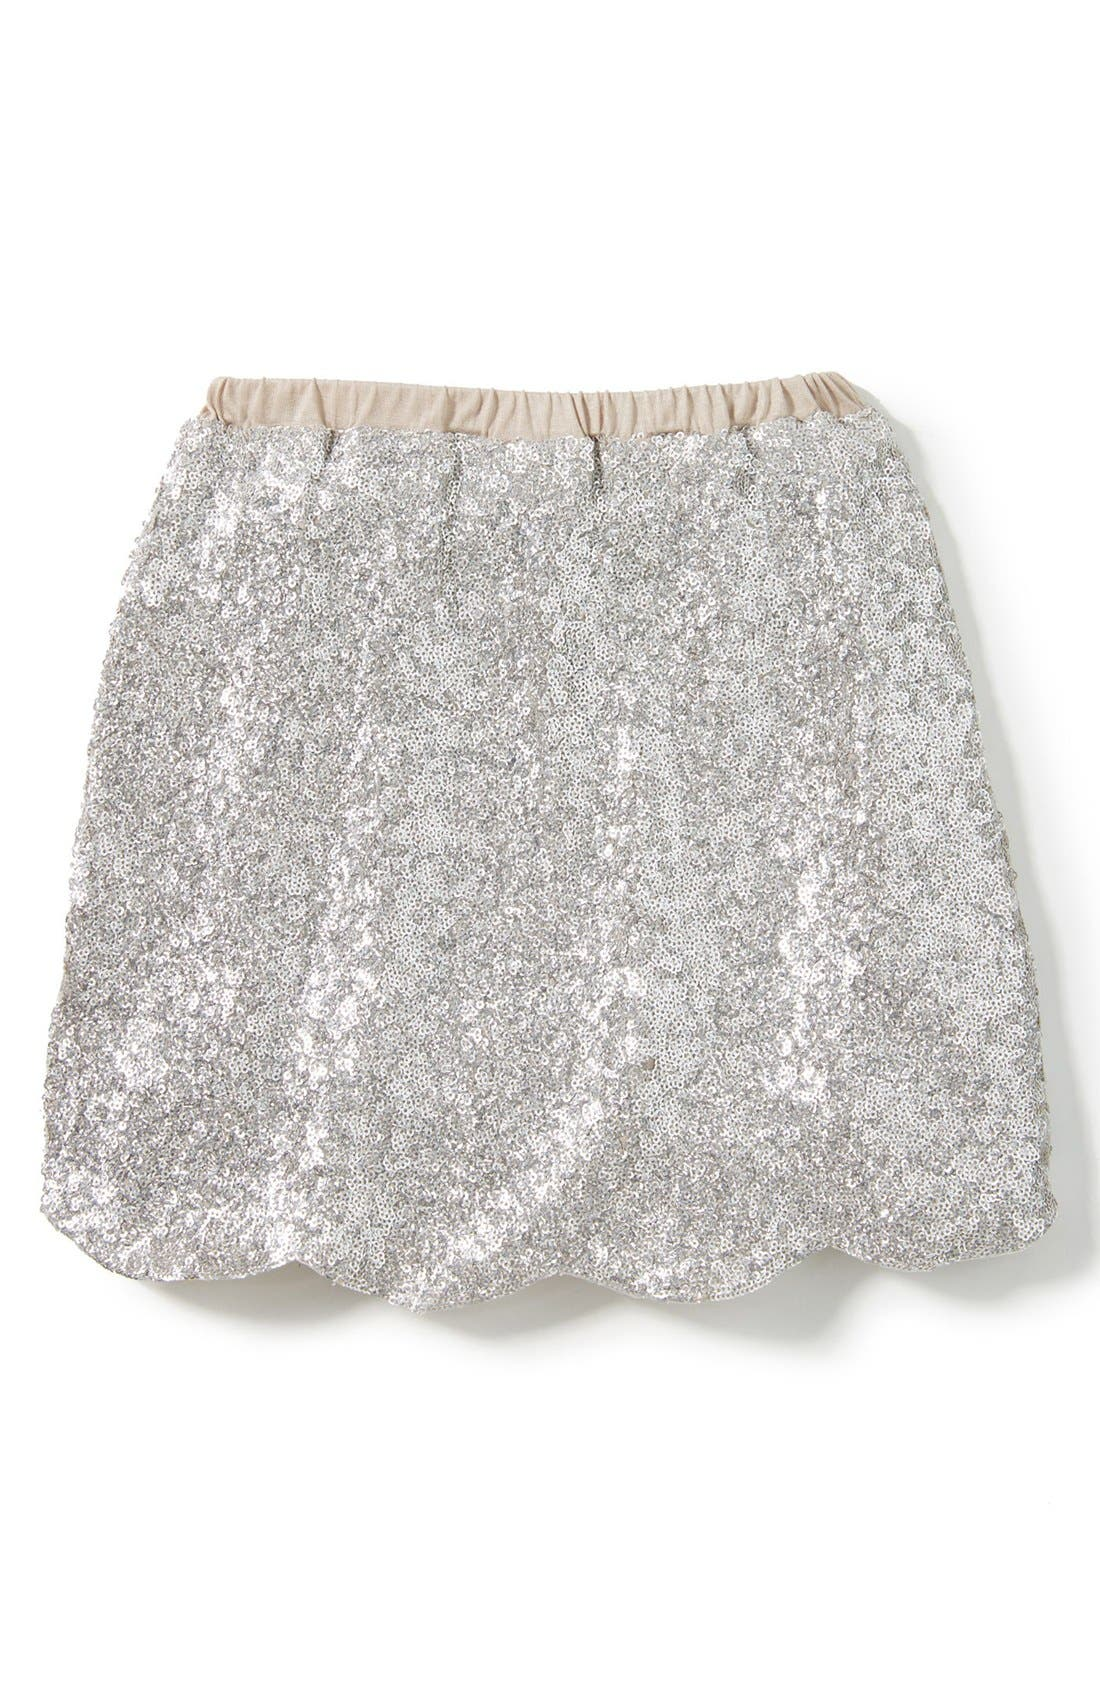 Peek Drew Sequin Skirt,                             Main thumbnail 1, color,                             040